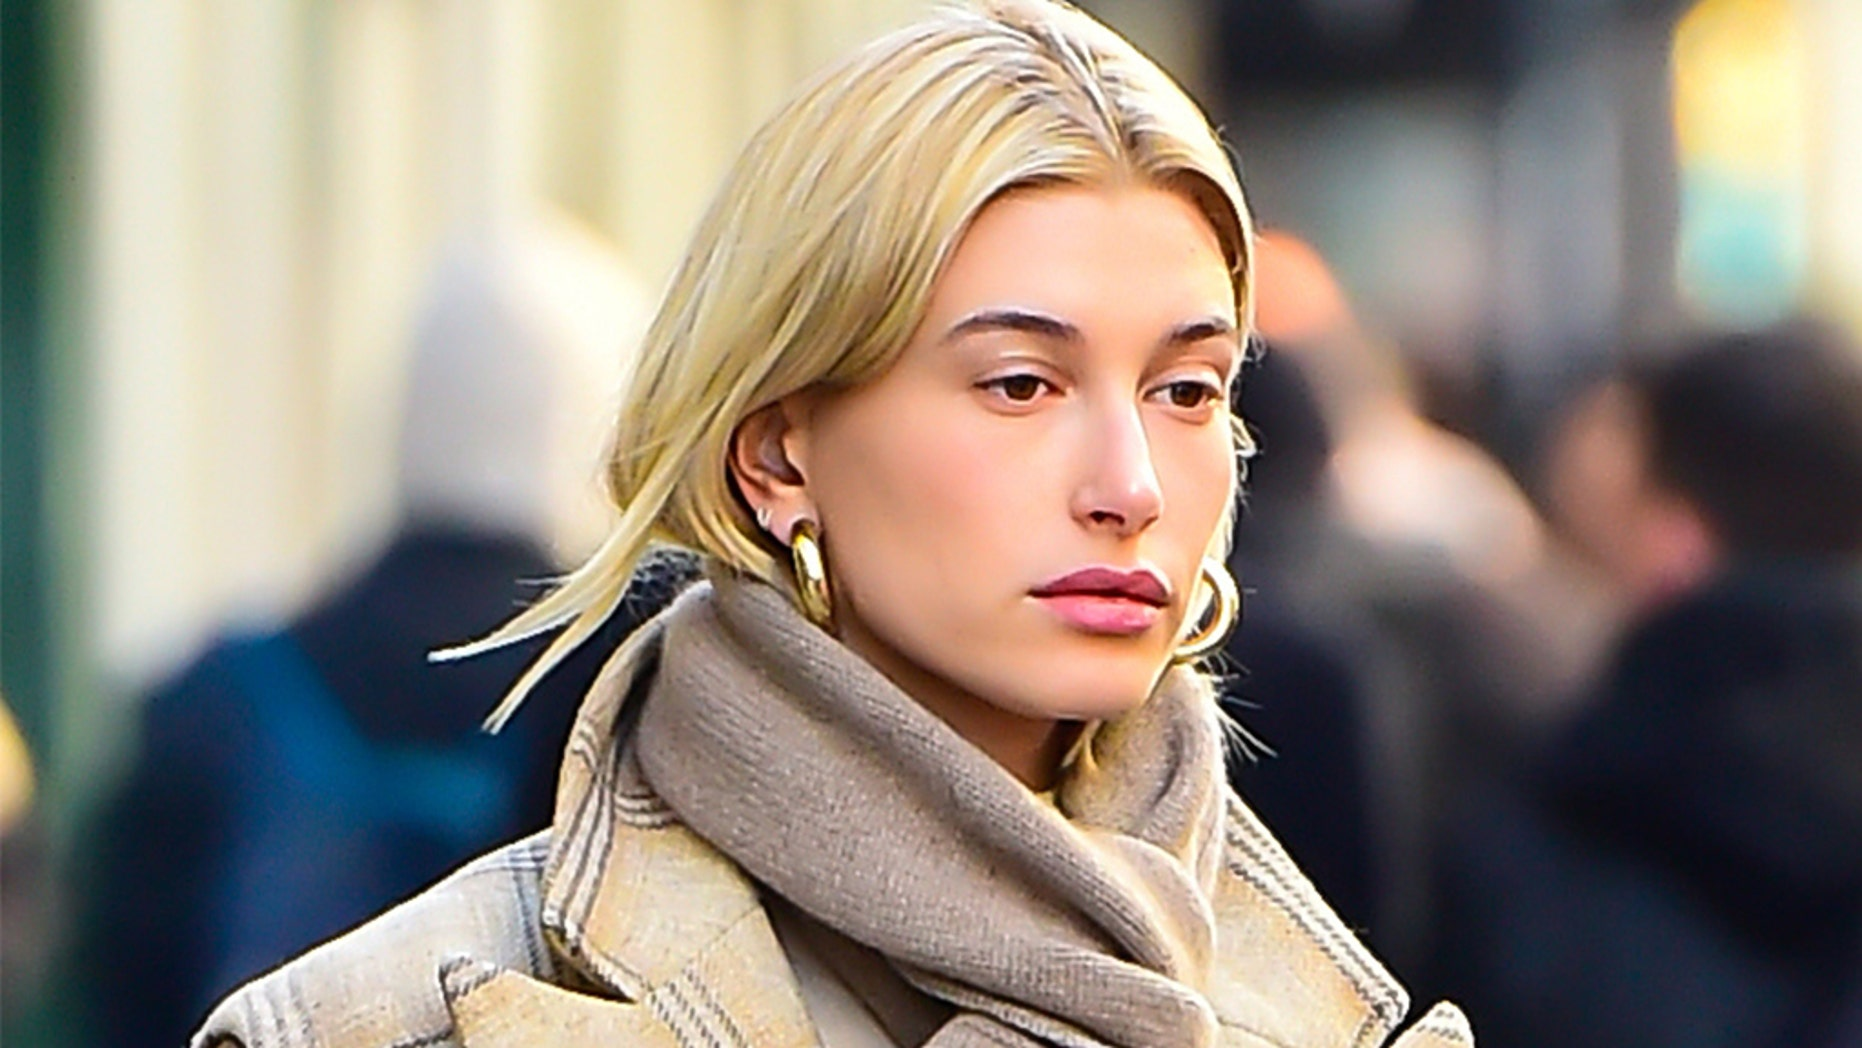 Hailey Baldwin nudes (11 pictures), photos Feet, Snapchat, butt 2018